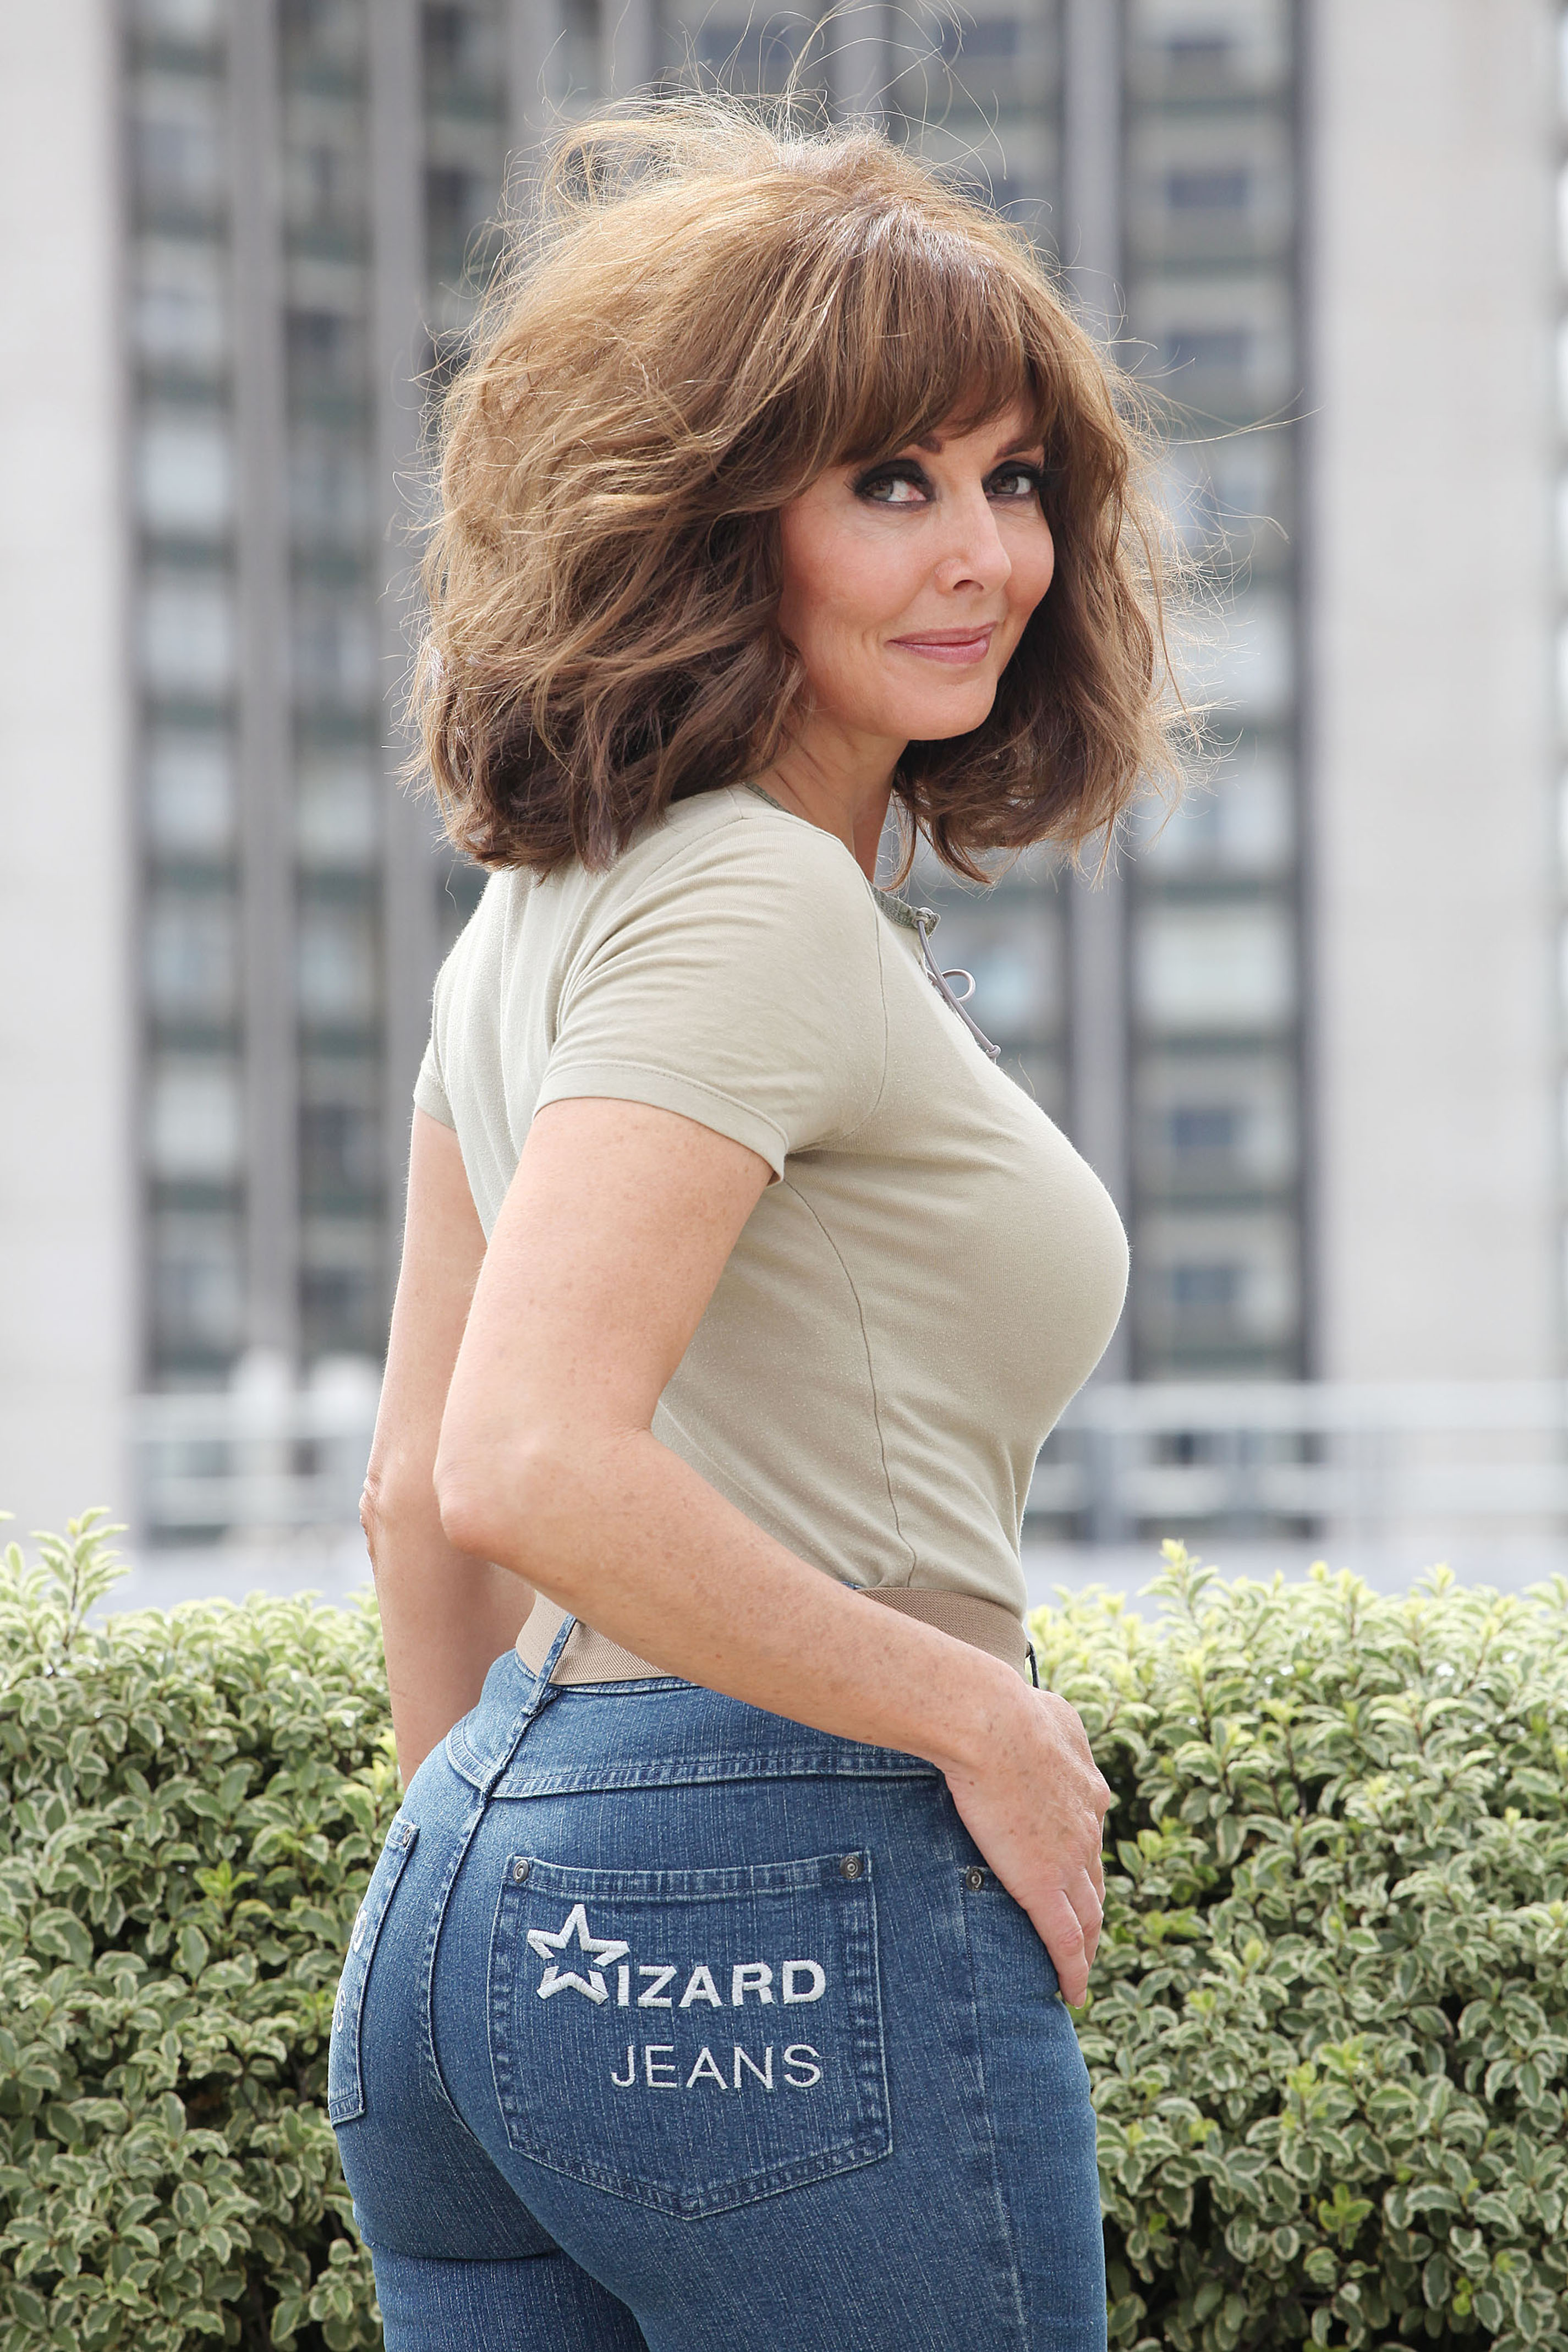 Image search: Carol Vorderman